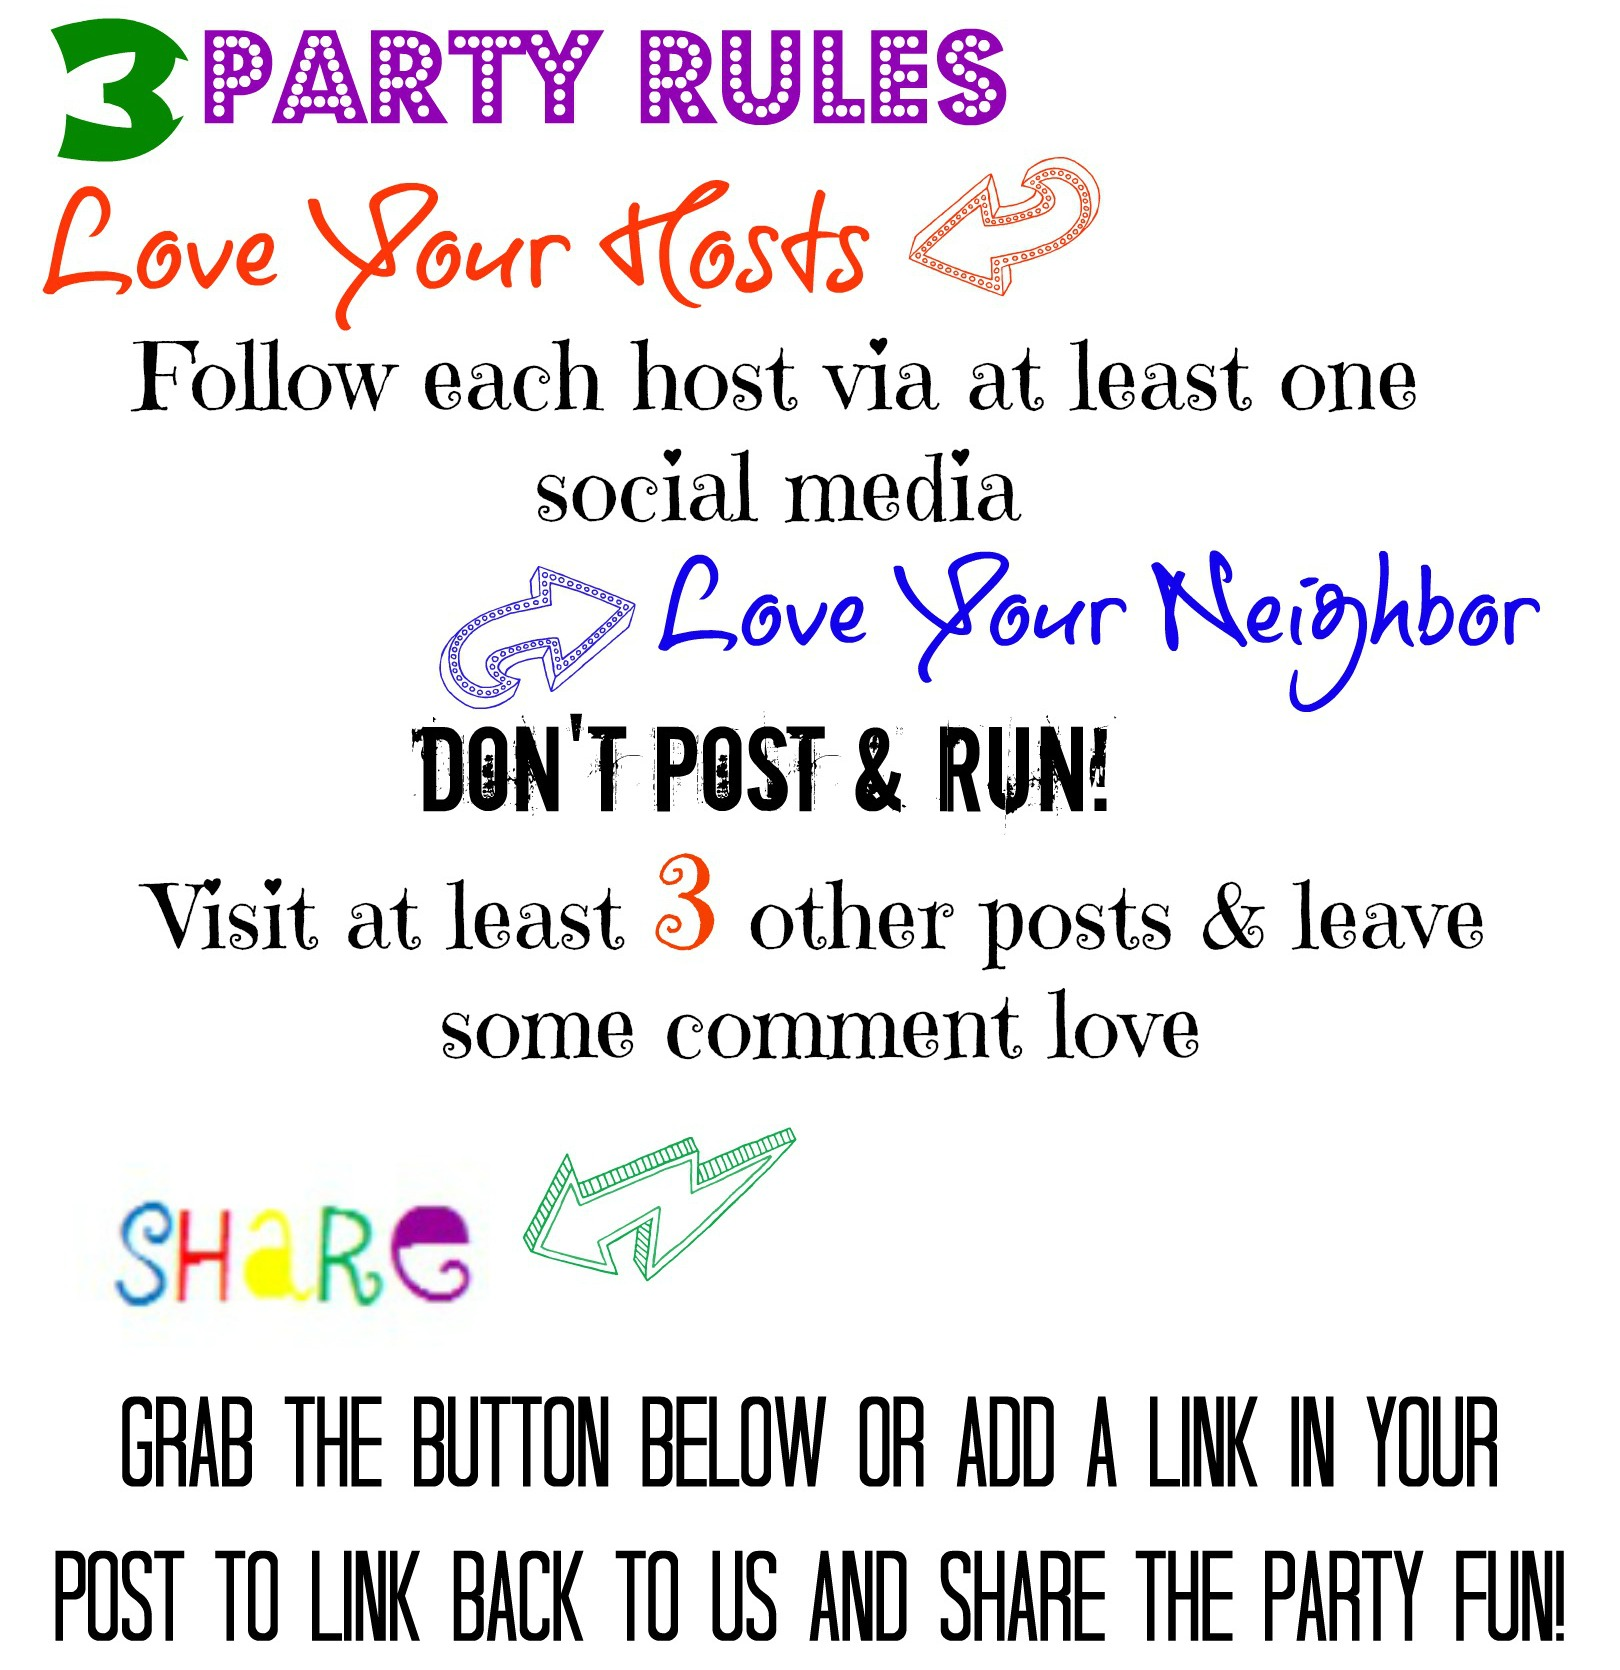 party rule photo 03